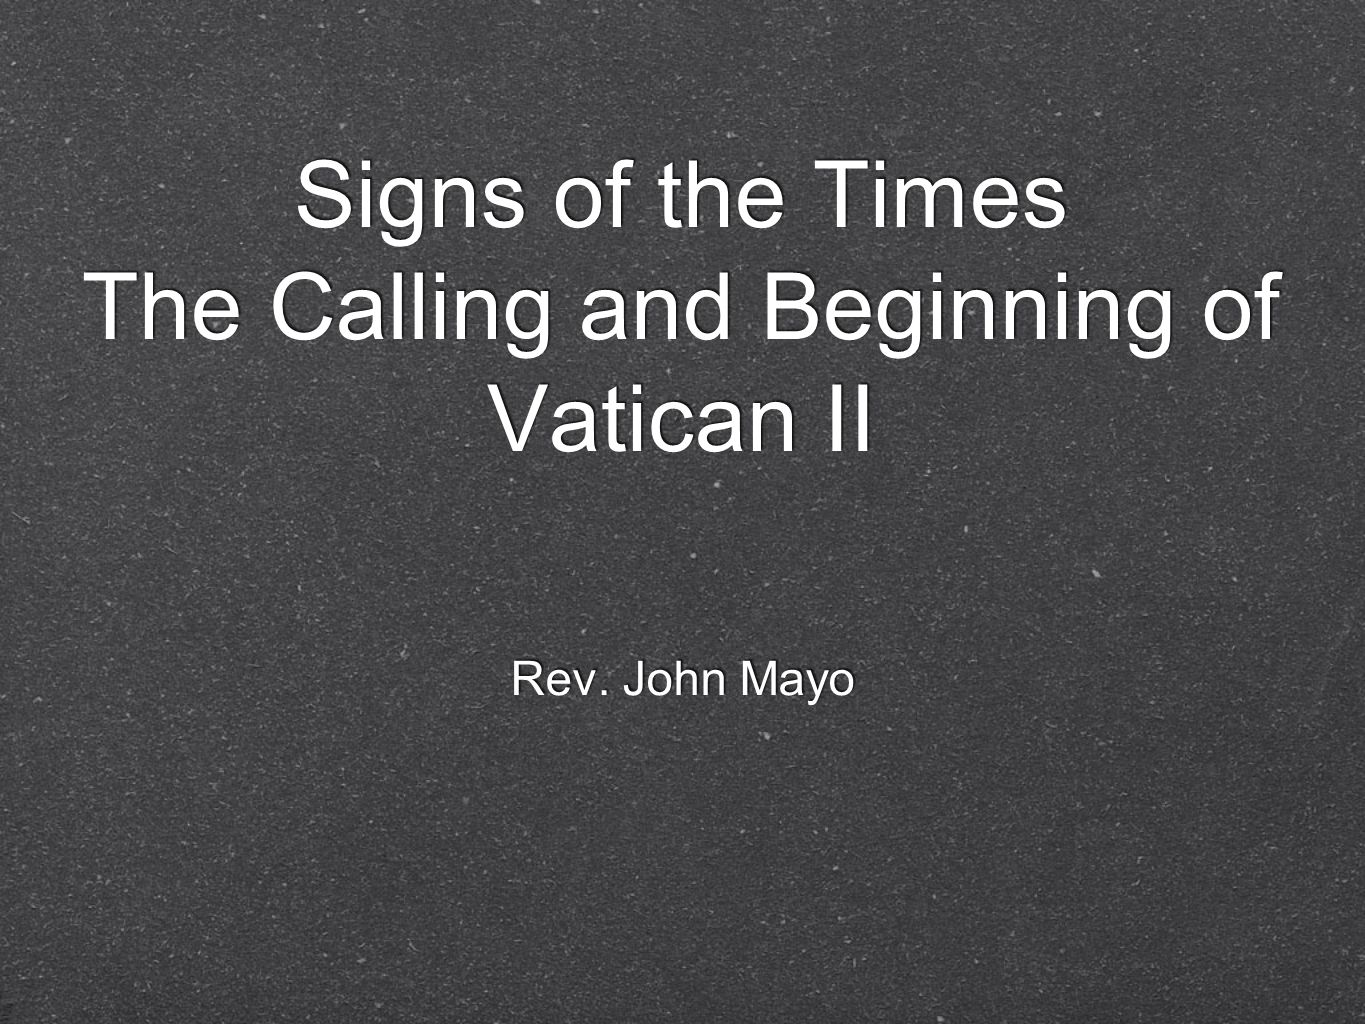 Signs of the Times The Calling and Beginning of Vatican II Rev. John Mayo